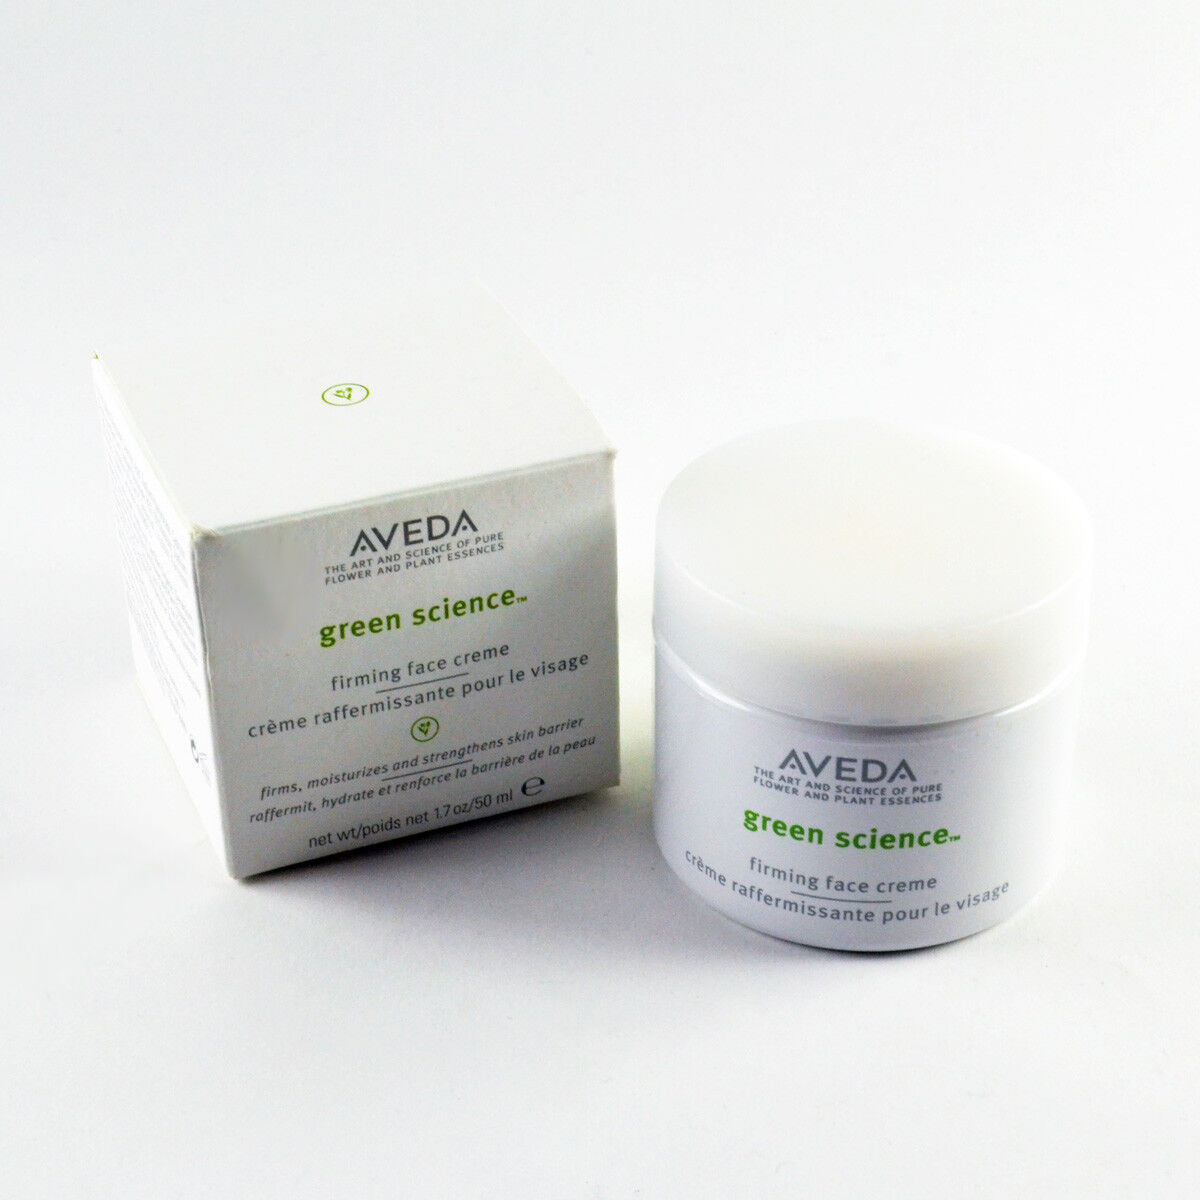 Aveda Green Science Firming Face Cream - Size 1.7 Oz. / 50mL